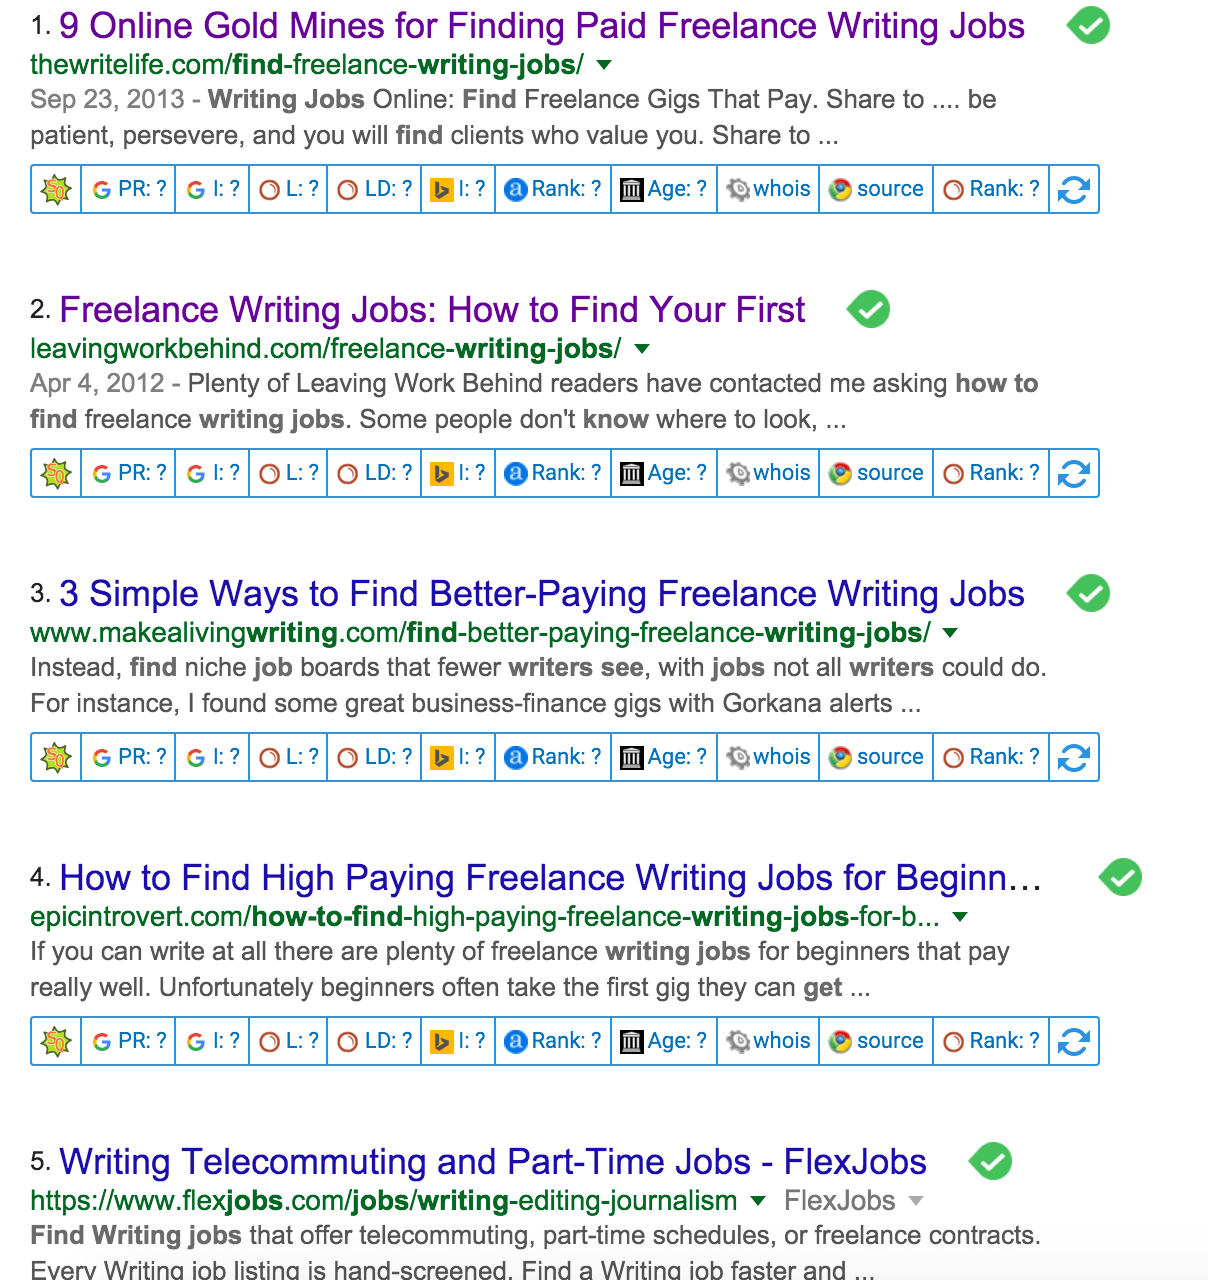 is paid online writing jobs legit i tend to think it s not your you can join the program i ve mentioned above and start writing for yourself this way you will make much more instead of working for someone else